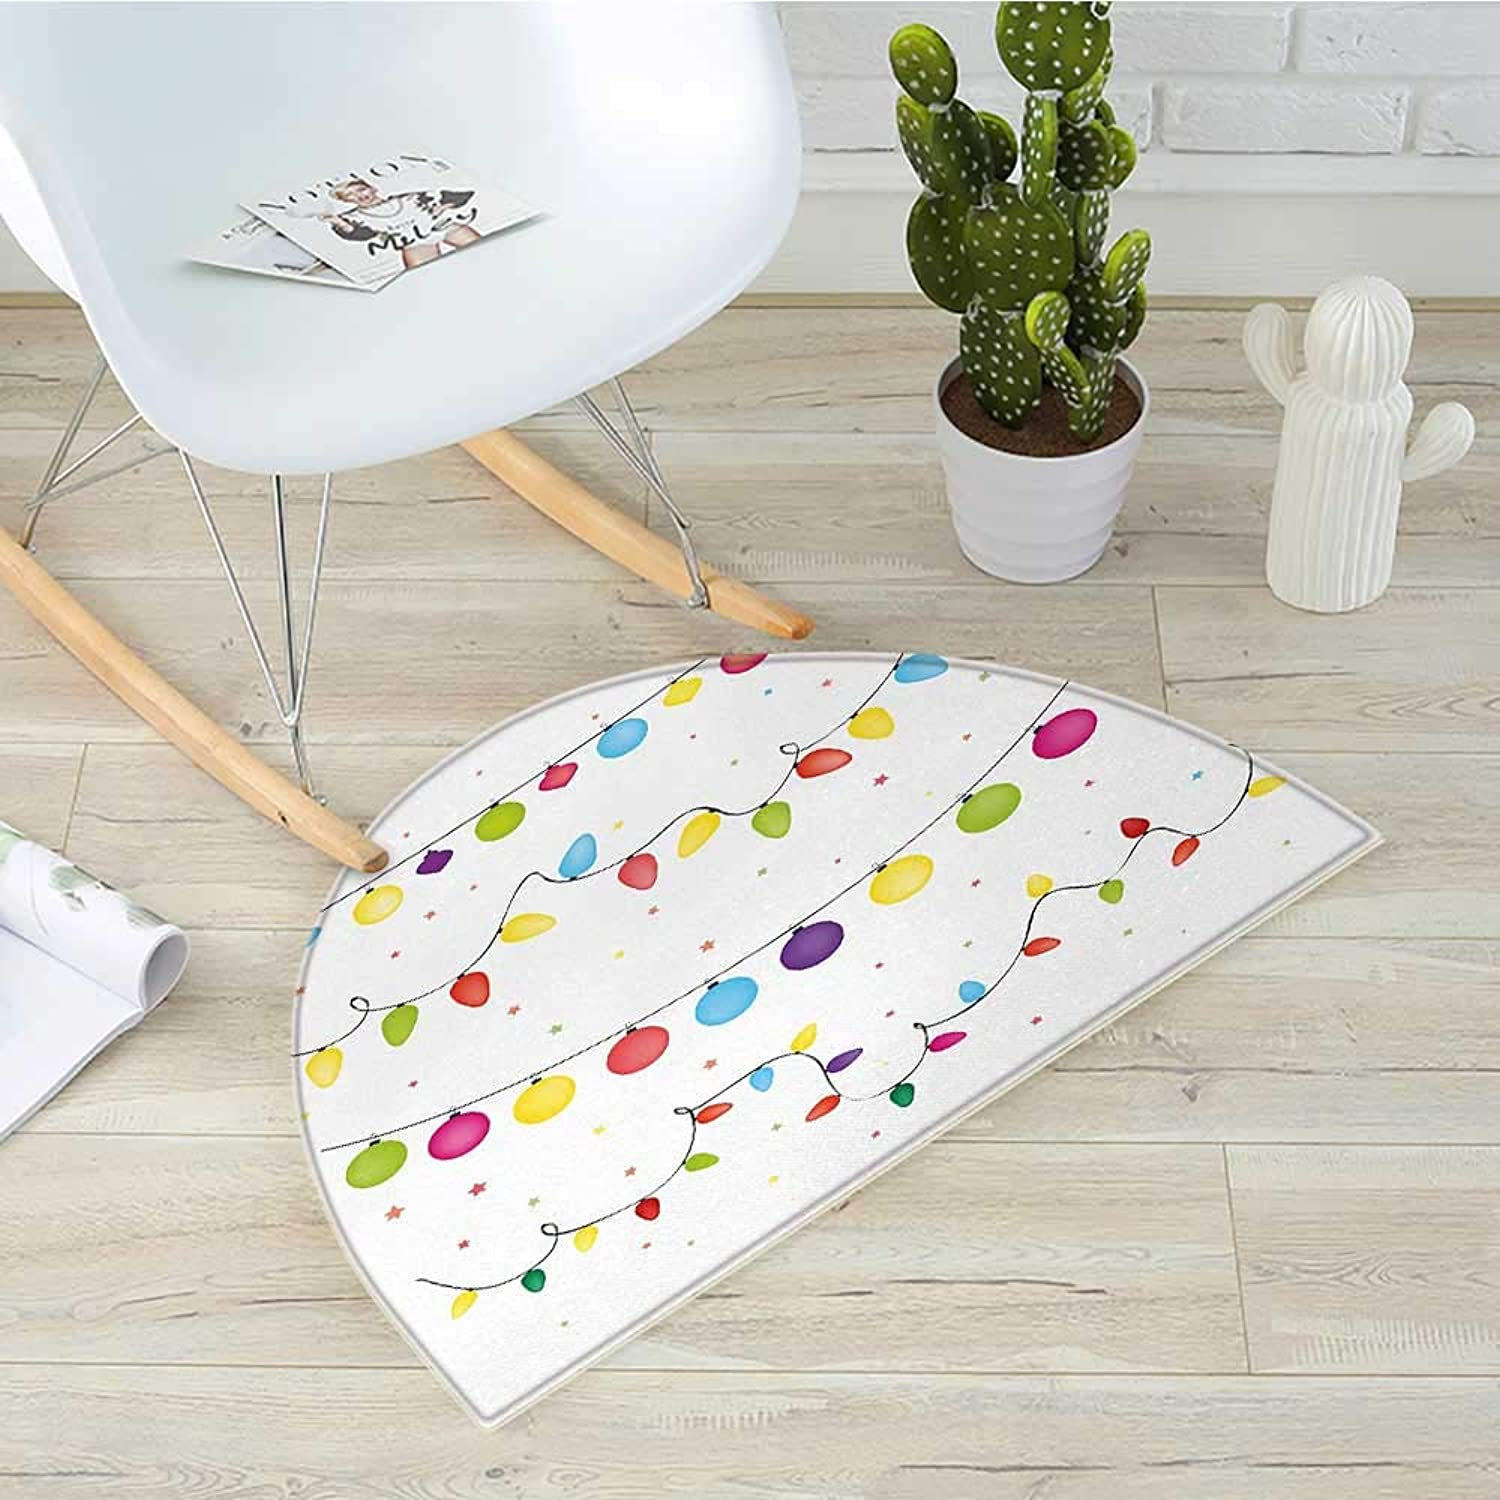 Kids Christmas Semicircular CushionPreparations for Party of The Year Theme Festive Occasion Happy Event Xmas Entry Door Mat H 39.3  xD 59  Multicolor